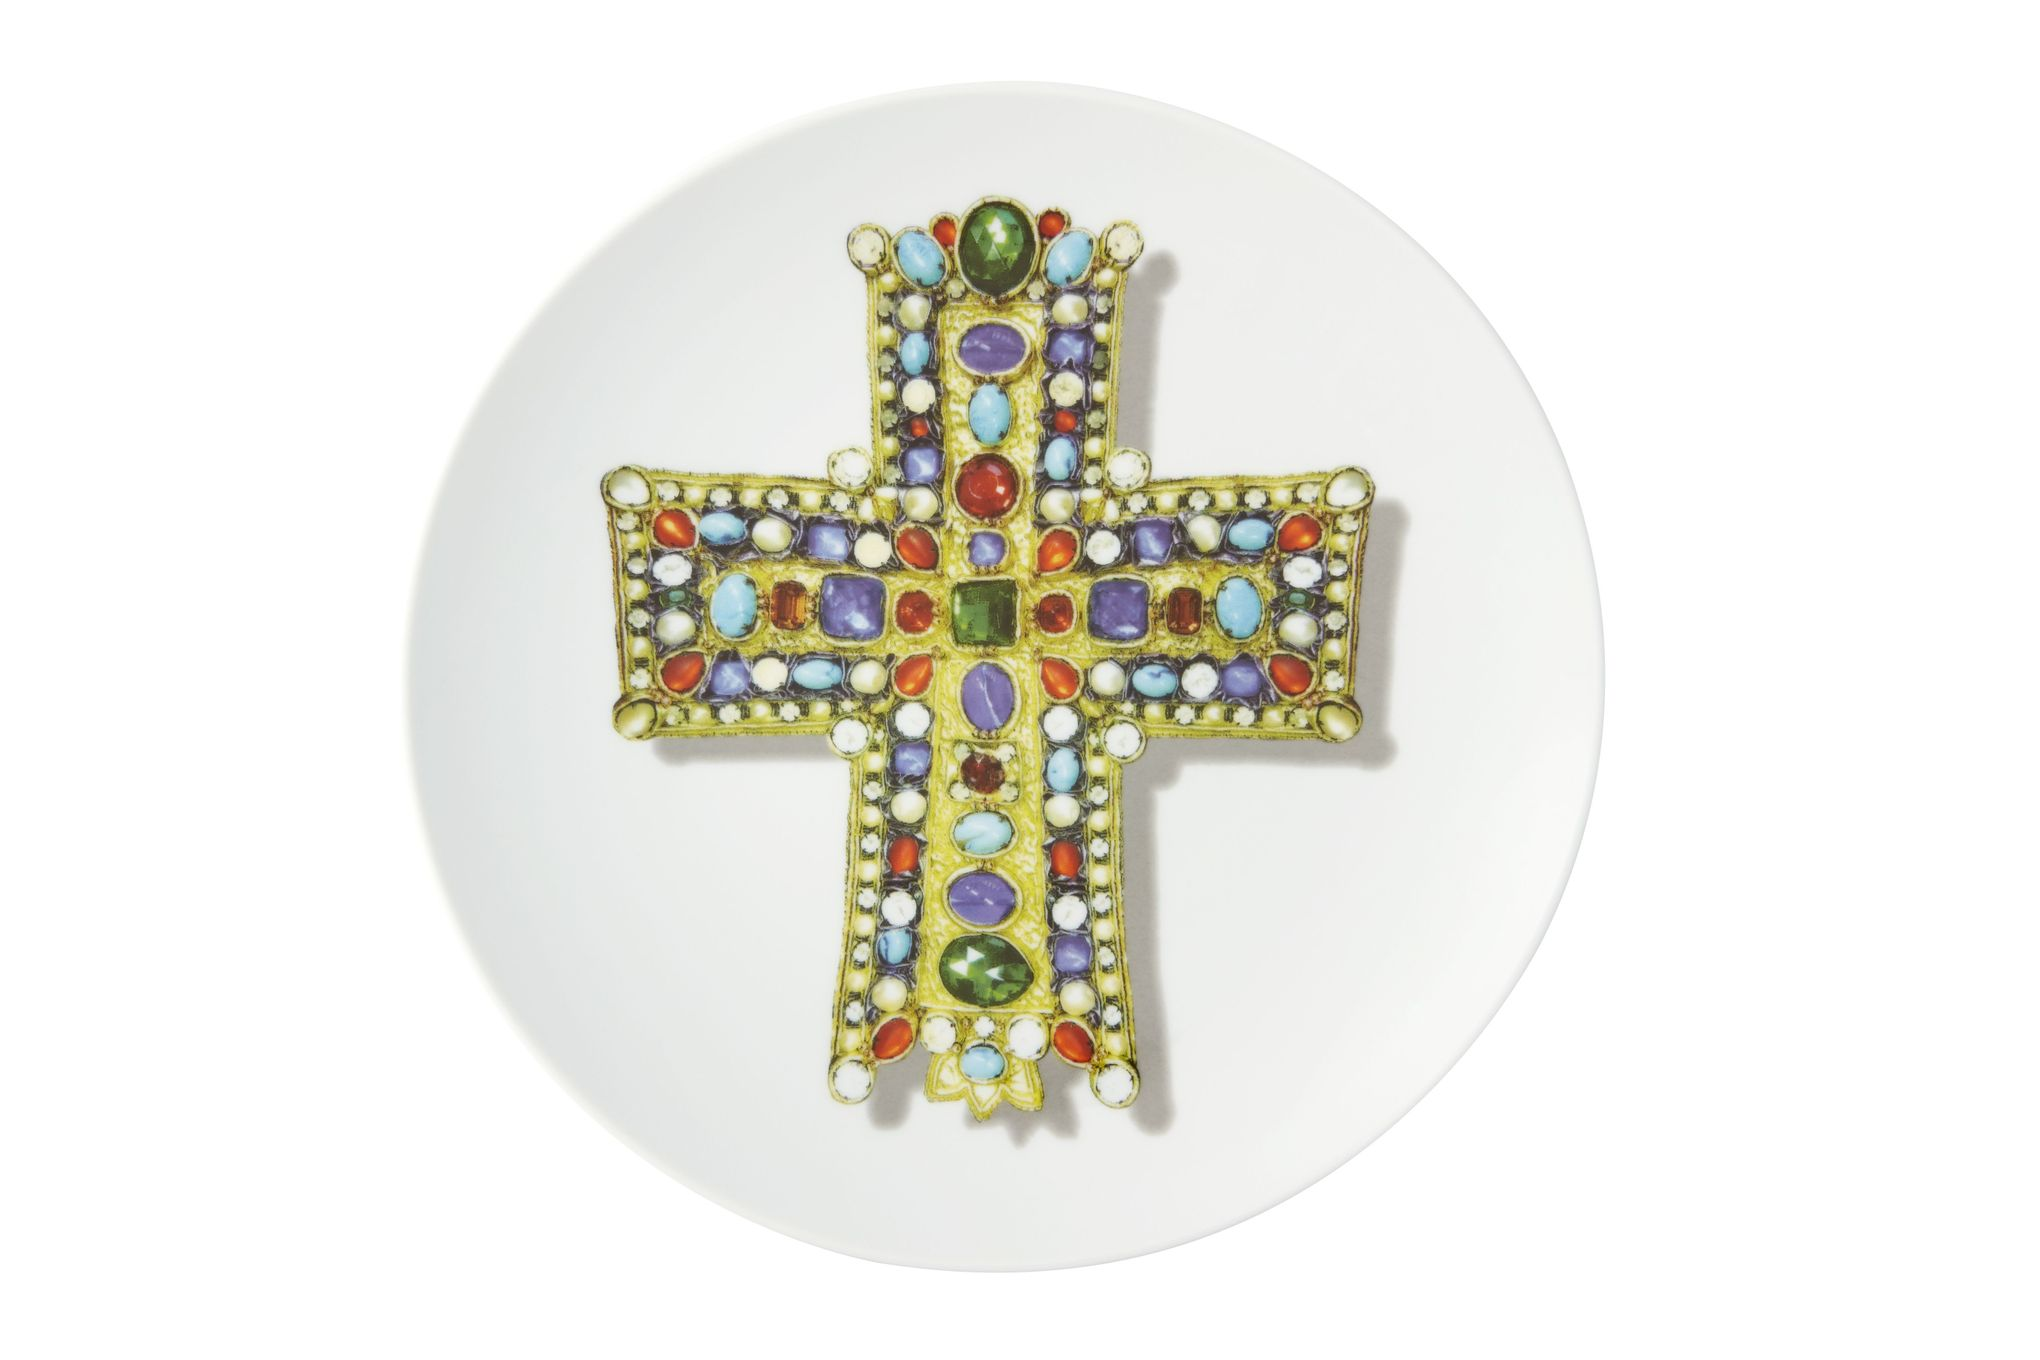 Christian Lacroix Love Who You Want Plate - Giftware Lacroix Lacroix - Gift Boxed 23cm thumb 1